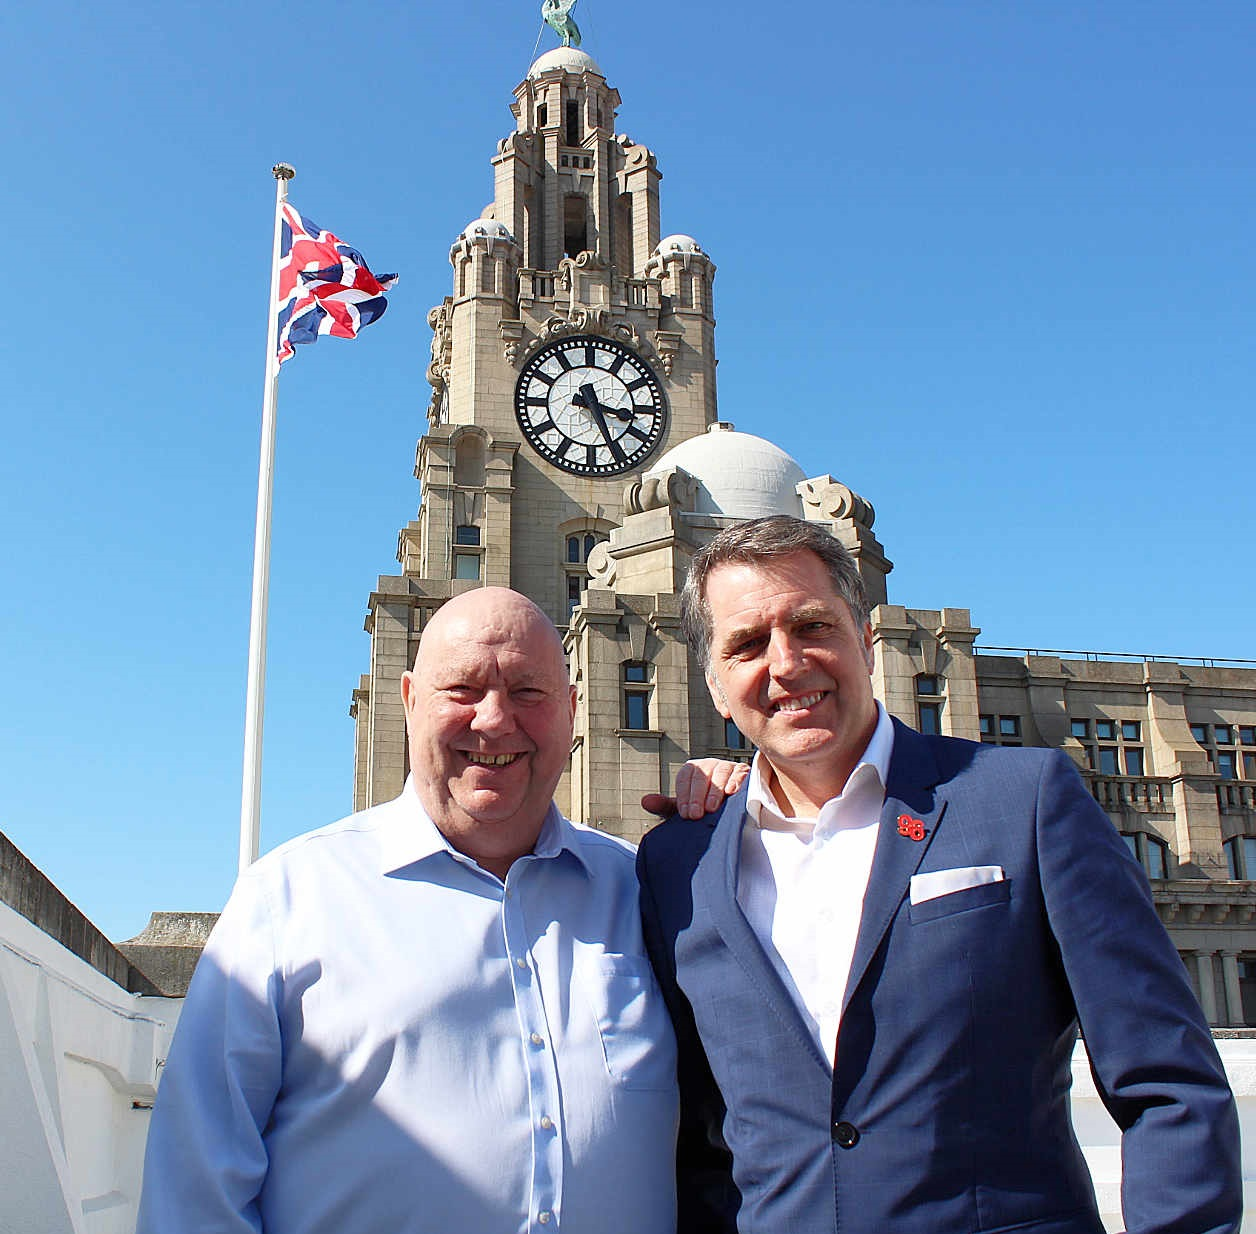 City and Metro Mayors Joe Anderson and Steve Rotheram to lead Liverpool's Channel 4 relocation bid